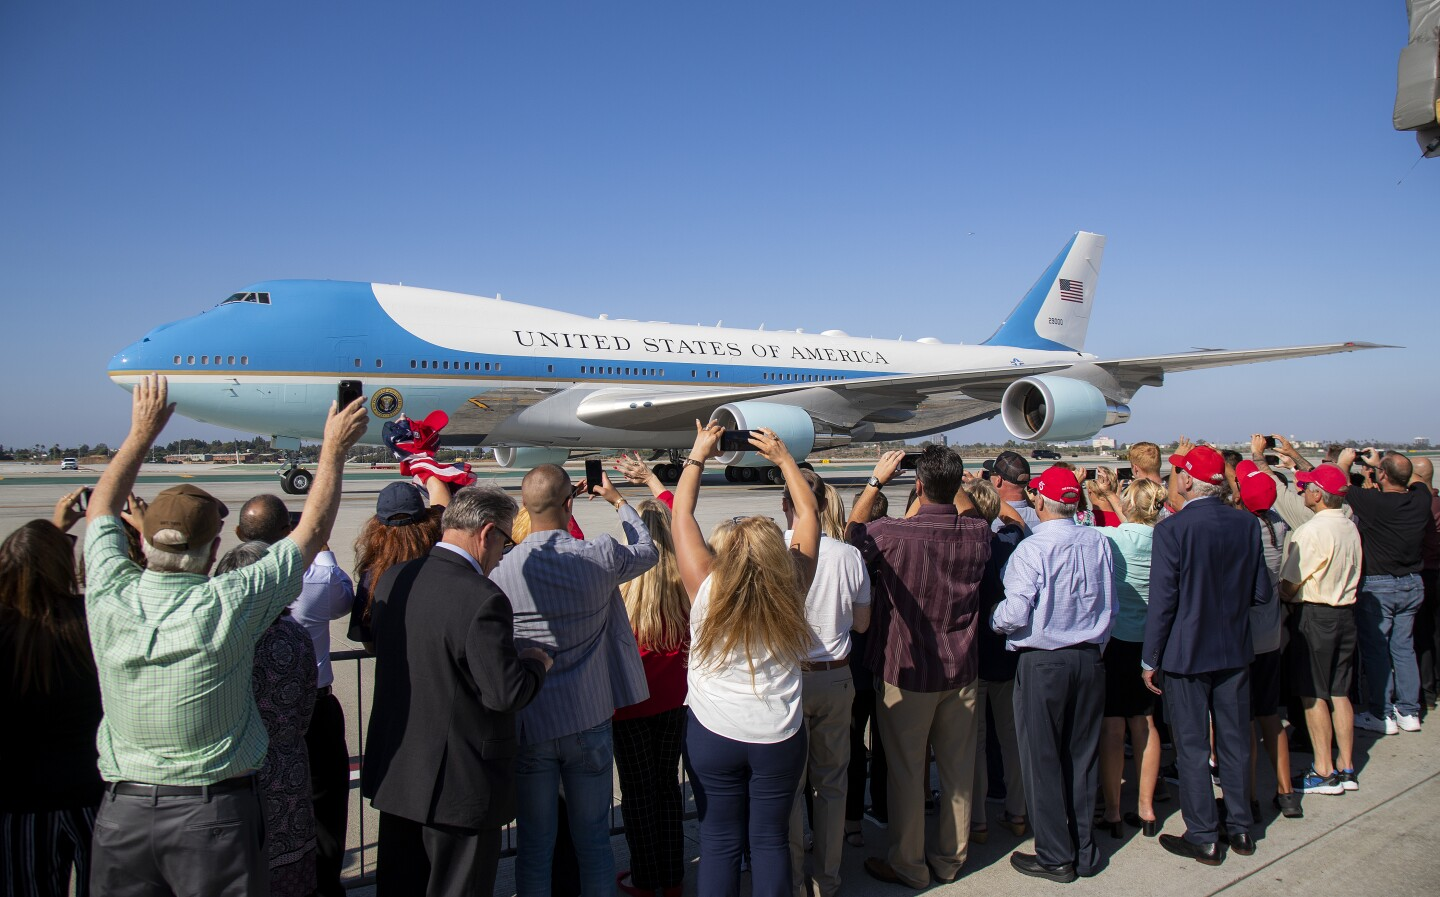 People greet Air Force One at LAX